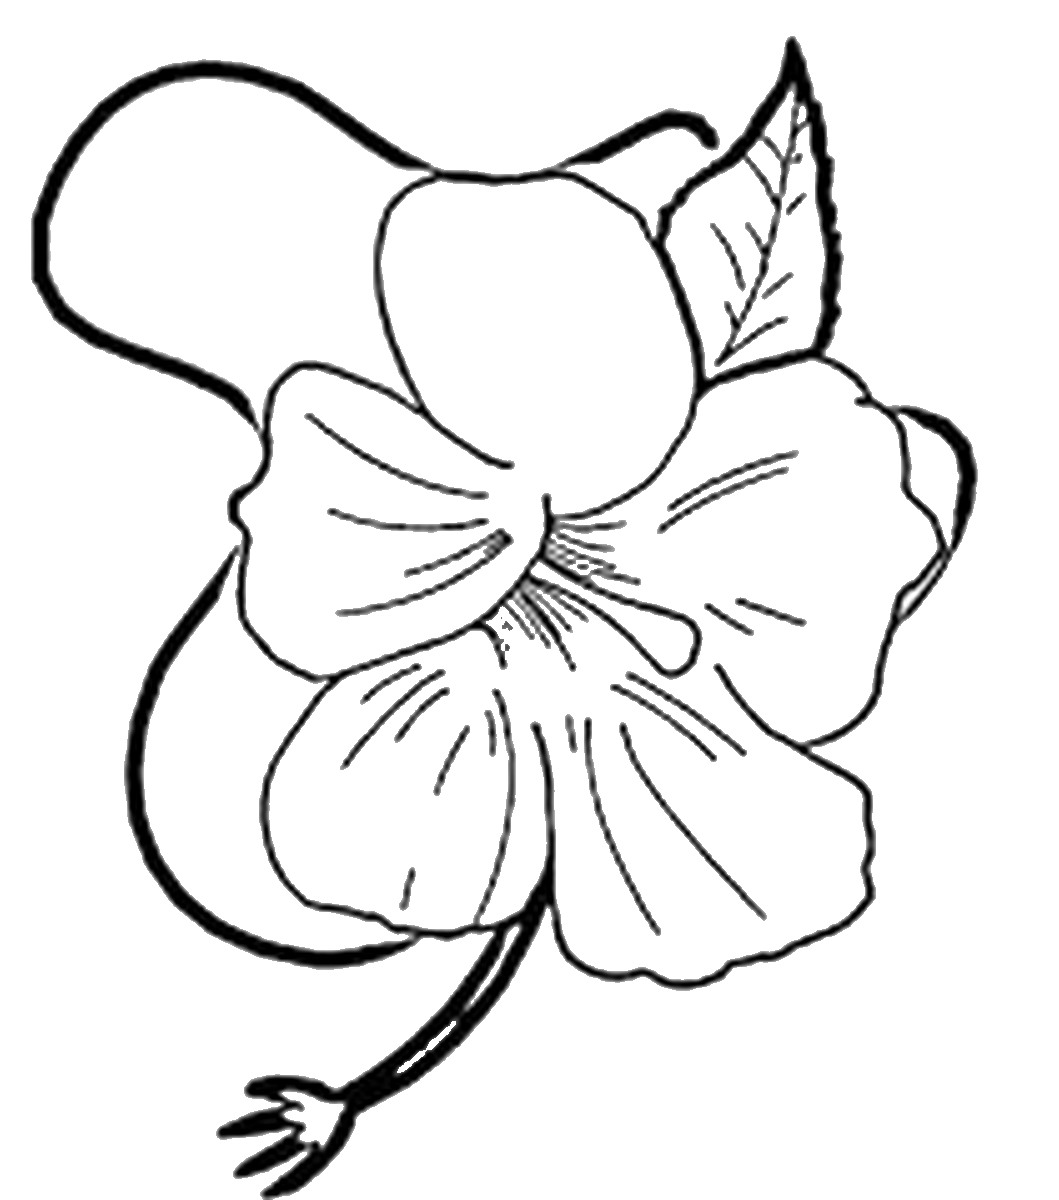 luau coloring pages luau coloring pages coloring luau pages